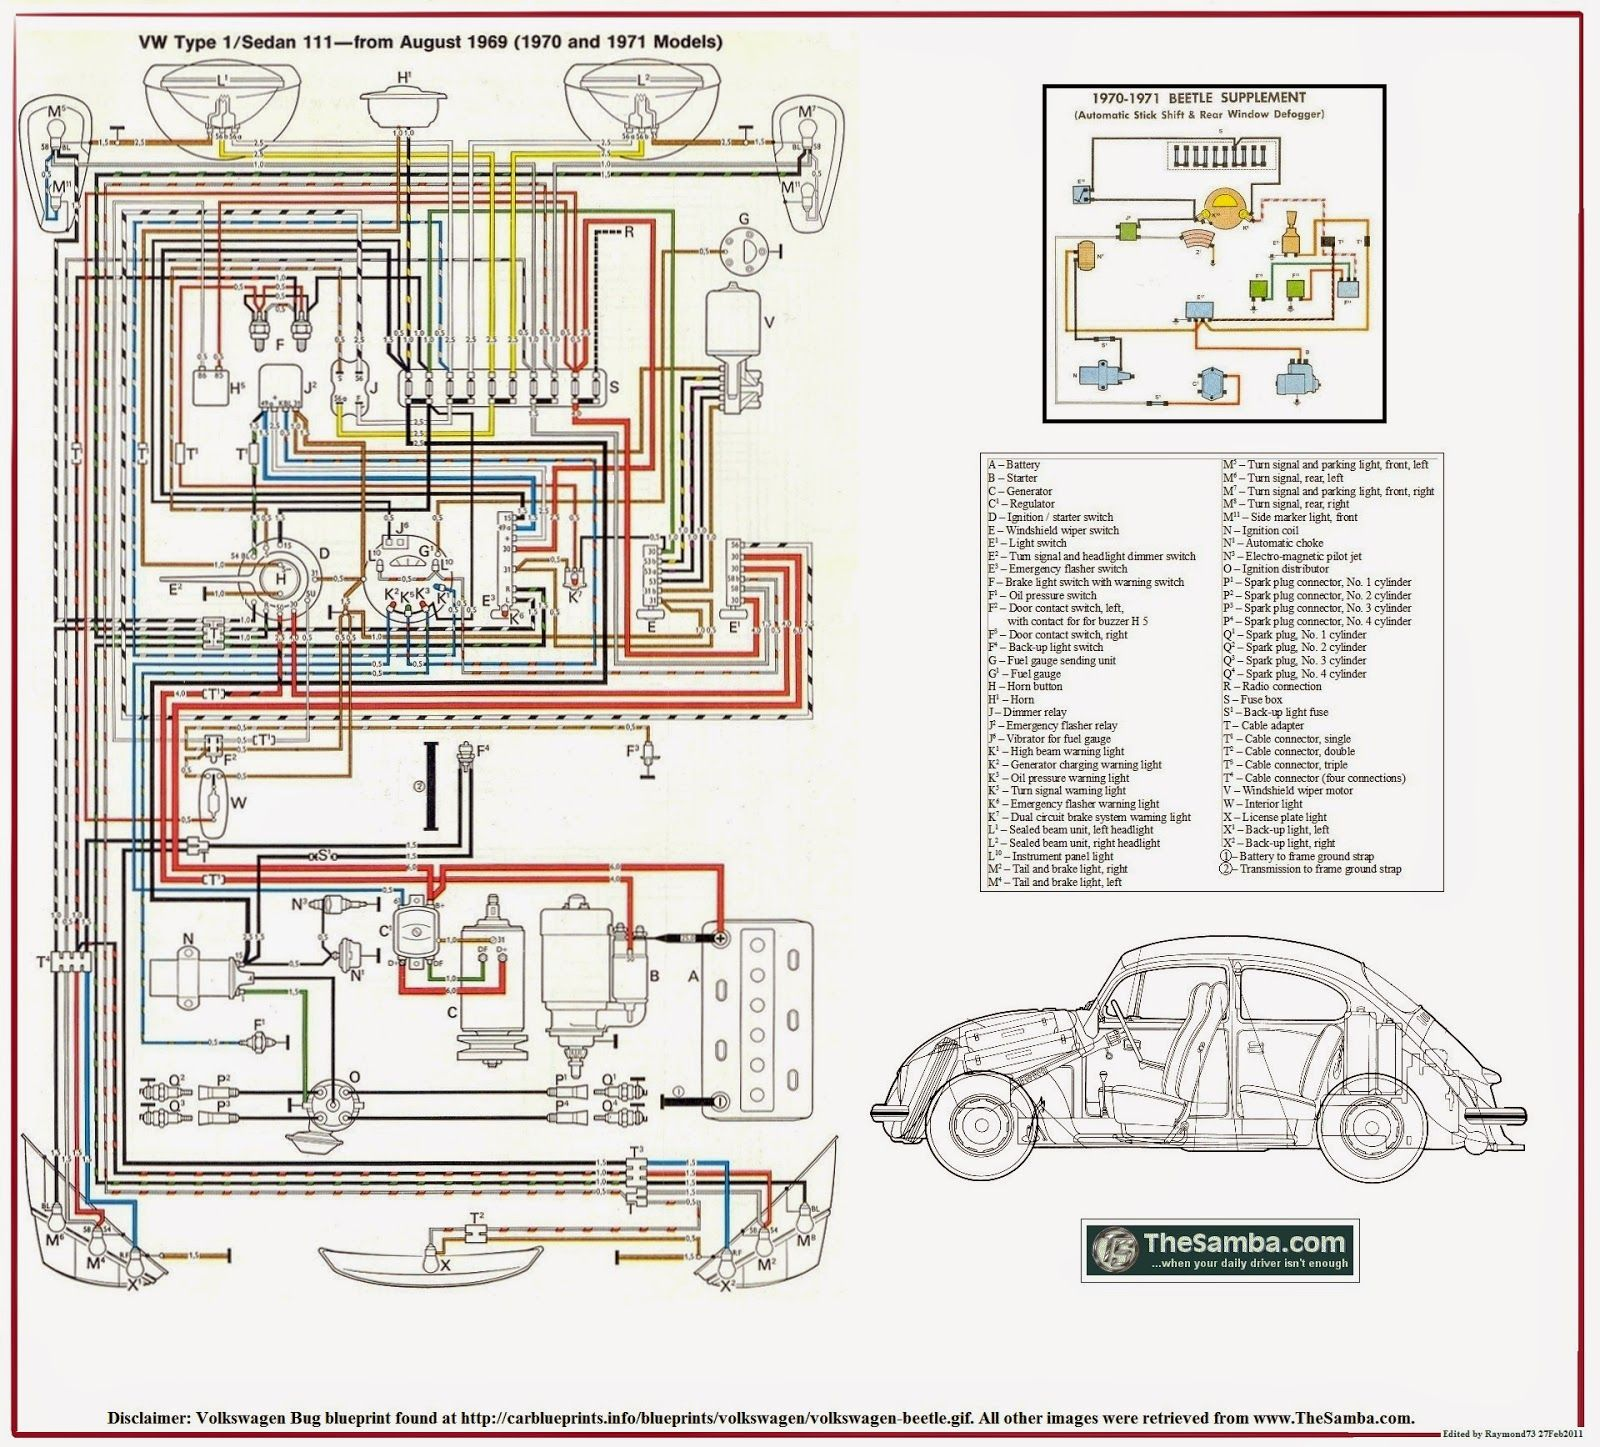 c42f7e50c6cd2df691326f8c1e5c6e97 urbi et orbi my bucket list journals volkswagen (vw) beetle 1970 vw beetle wiring diagram at edmiracle.co